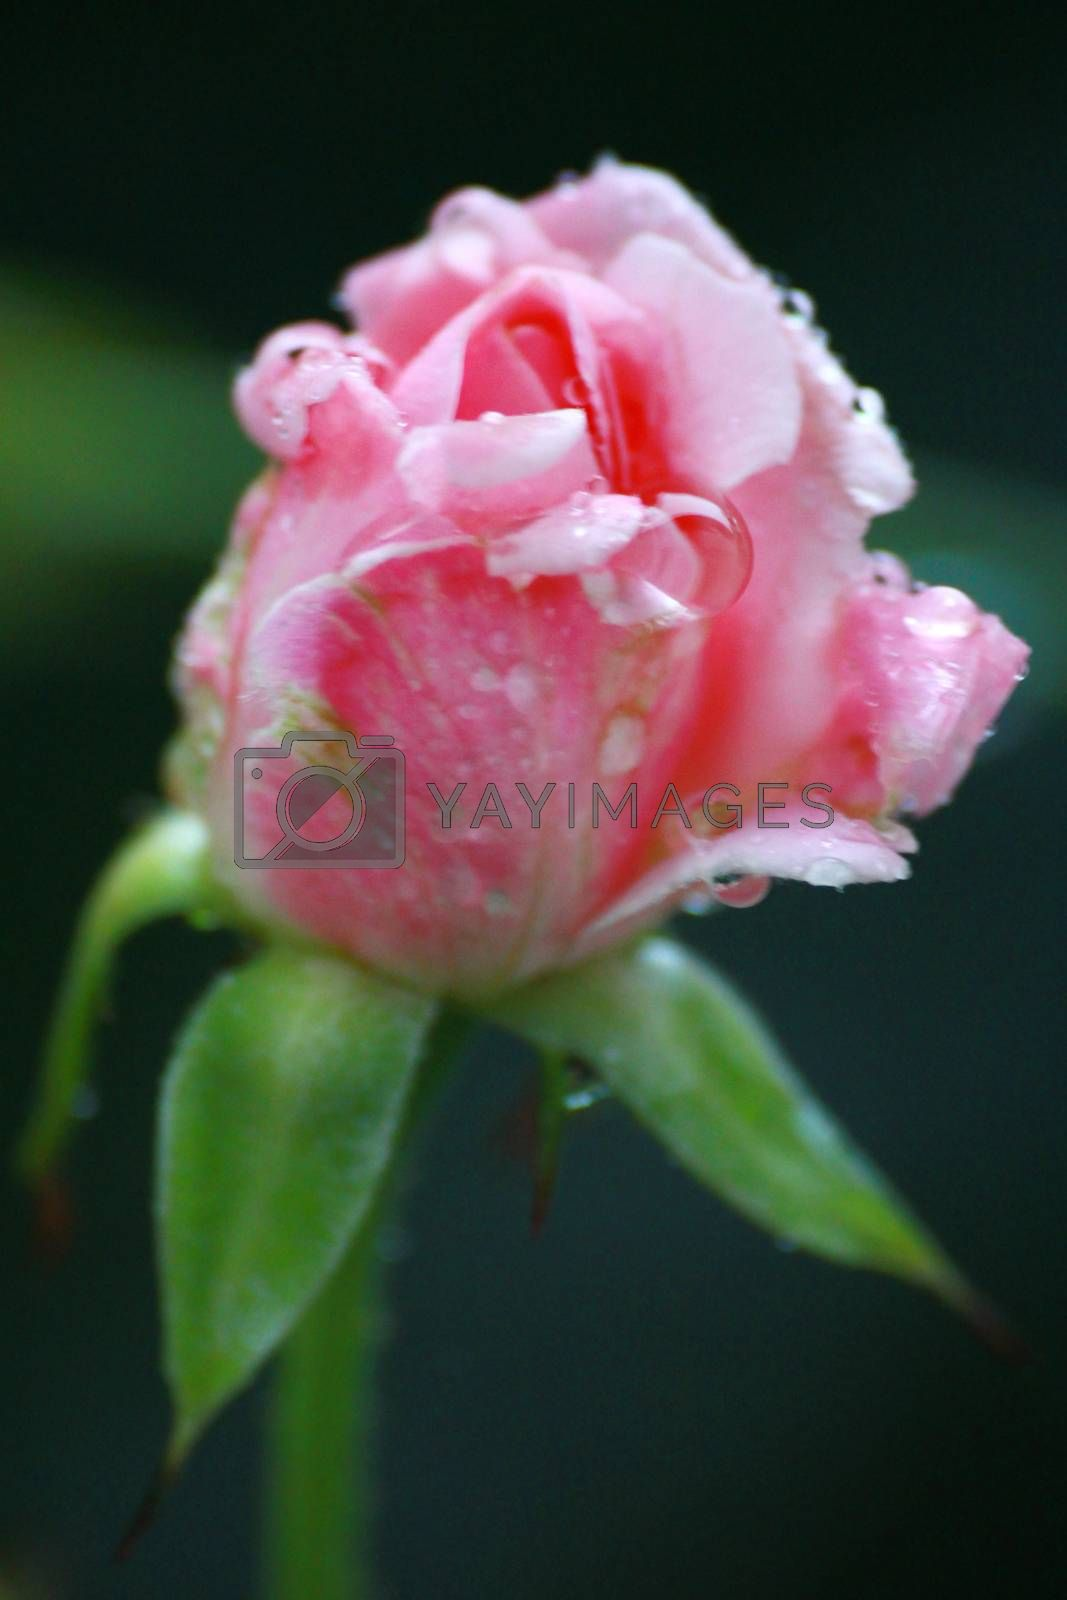 Royalty free image of drop on pink rose  by kaidevil